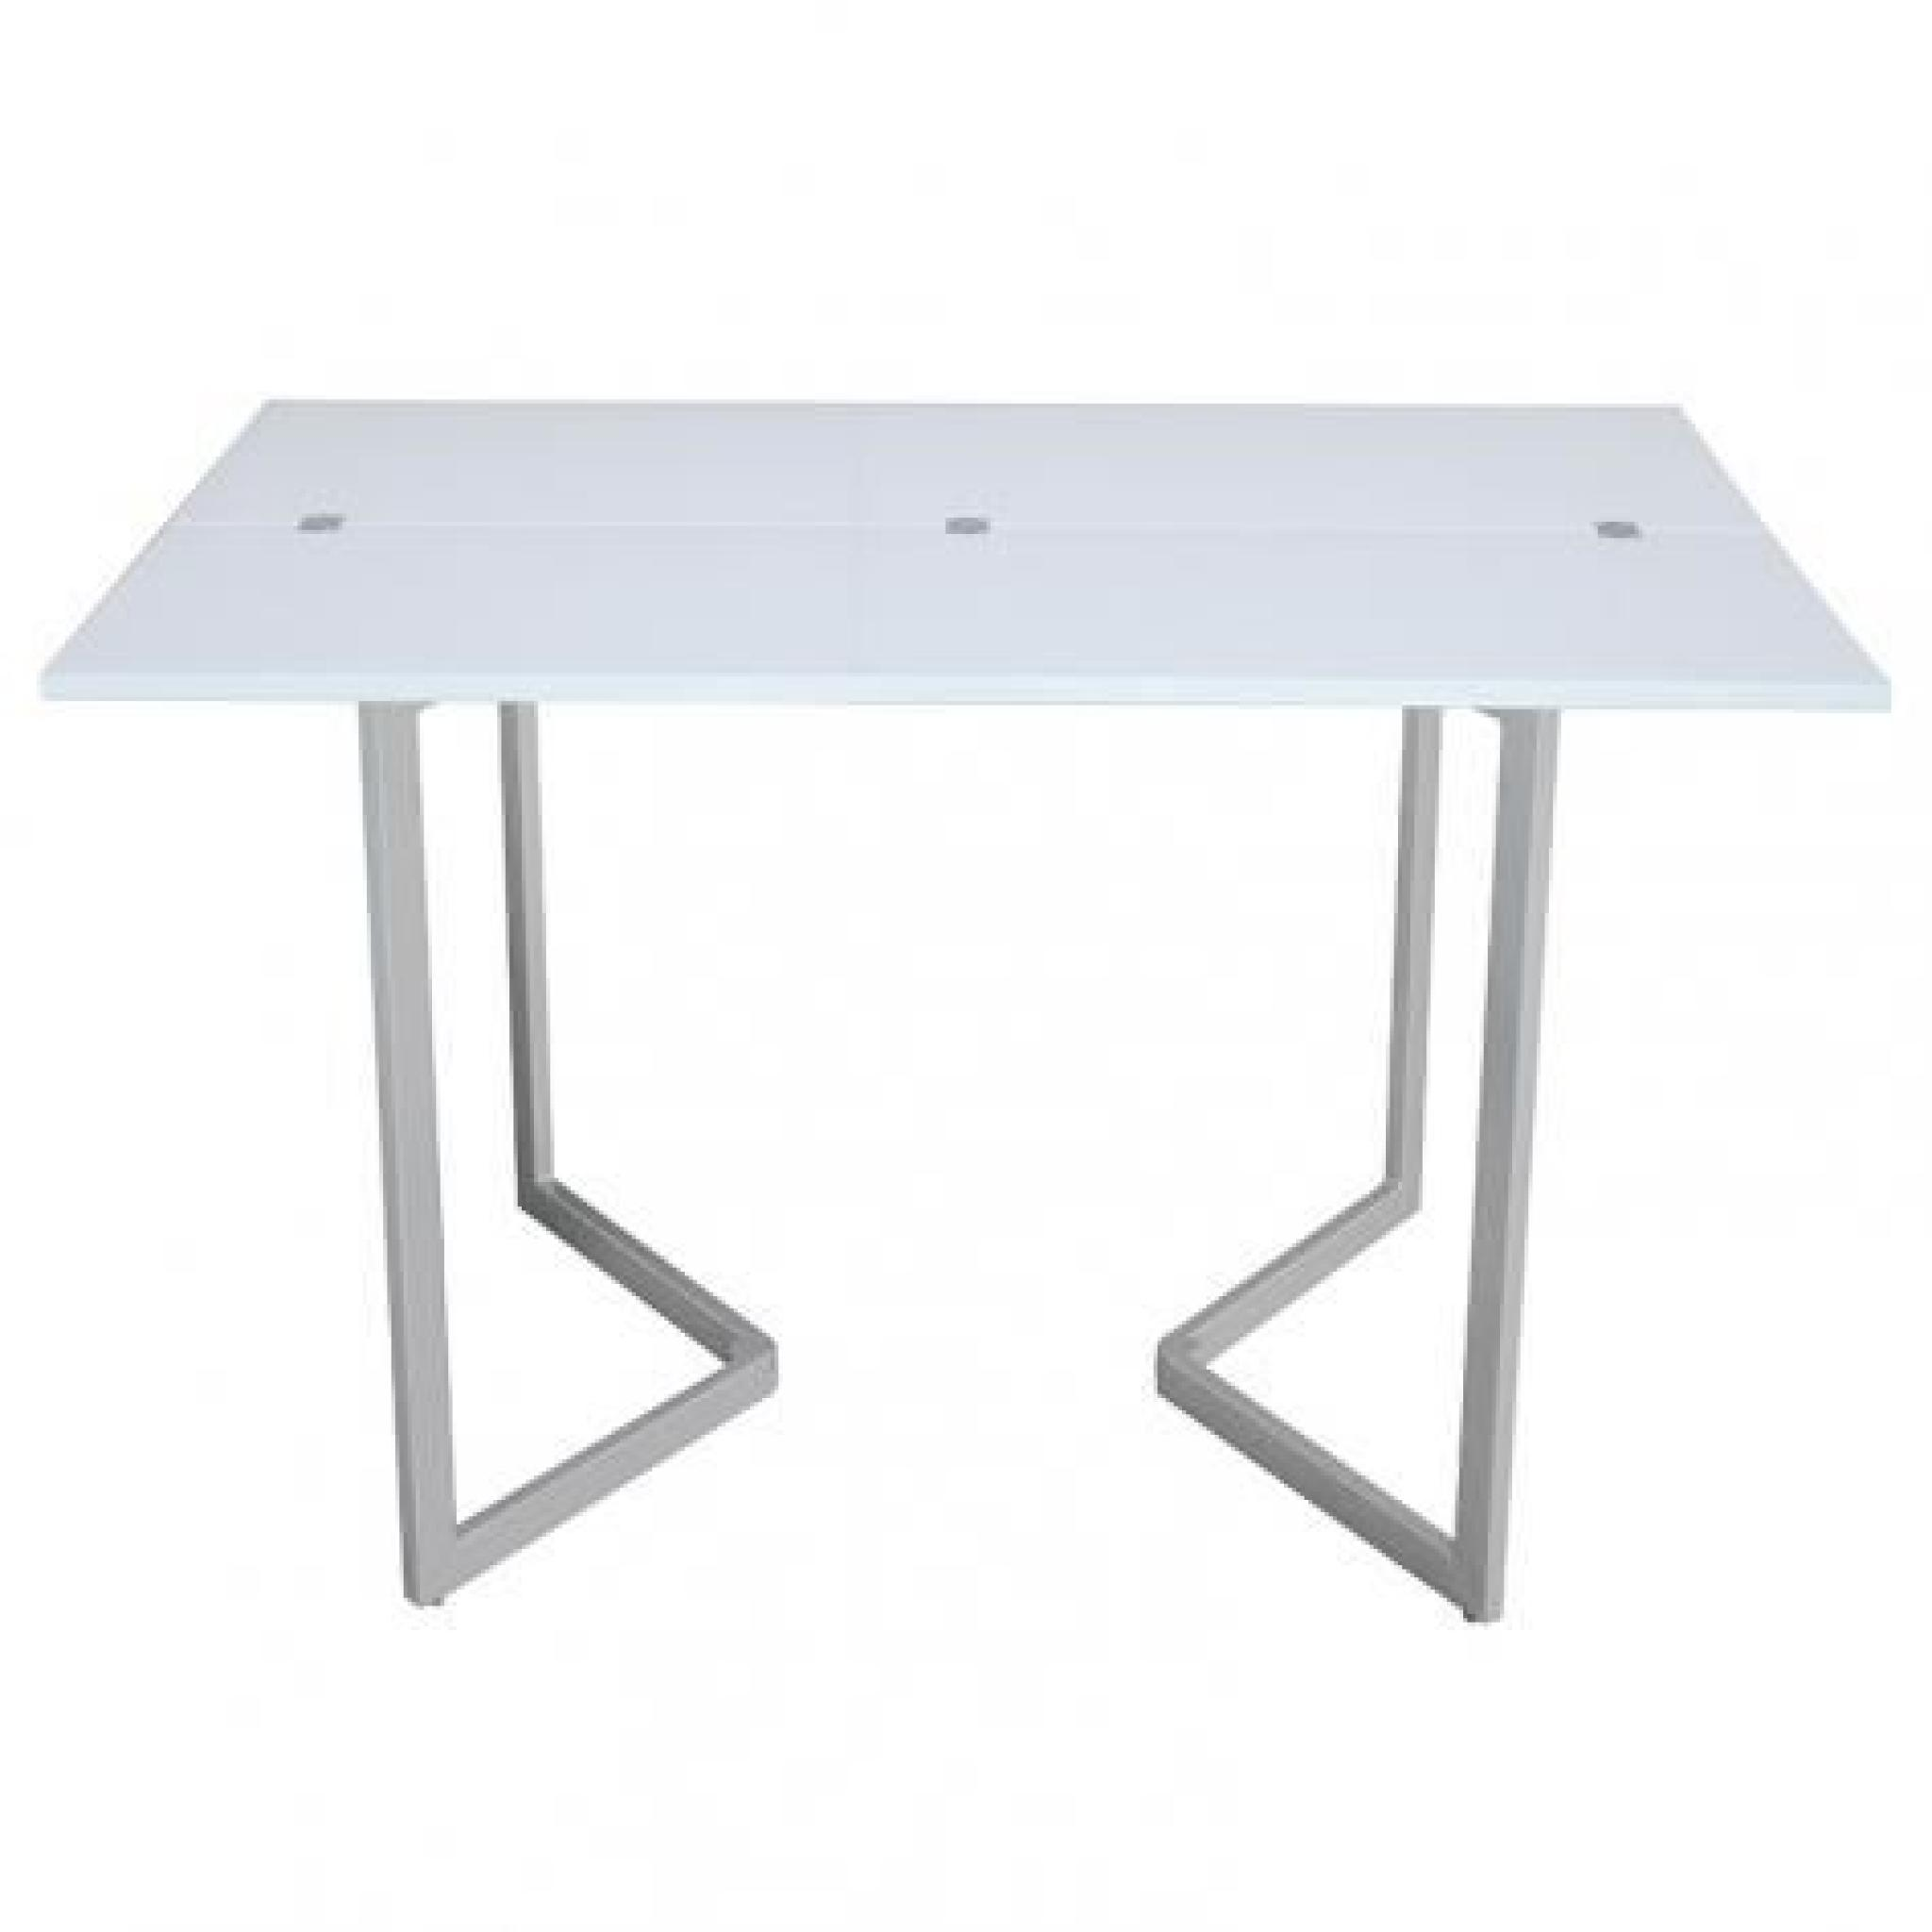 Table console extensible habitat simple tables cuisine for Table laquee extensible